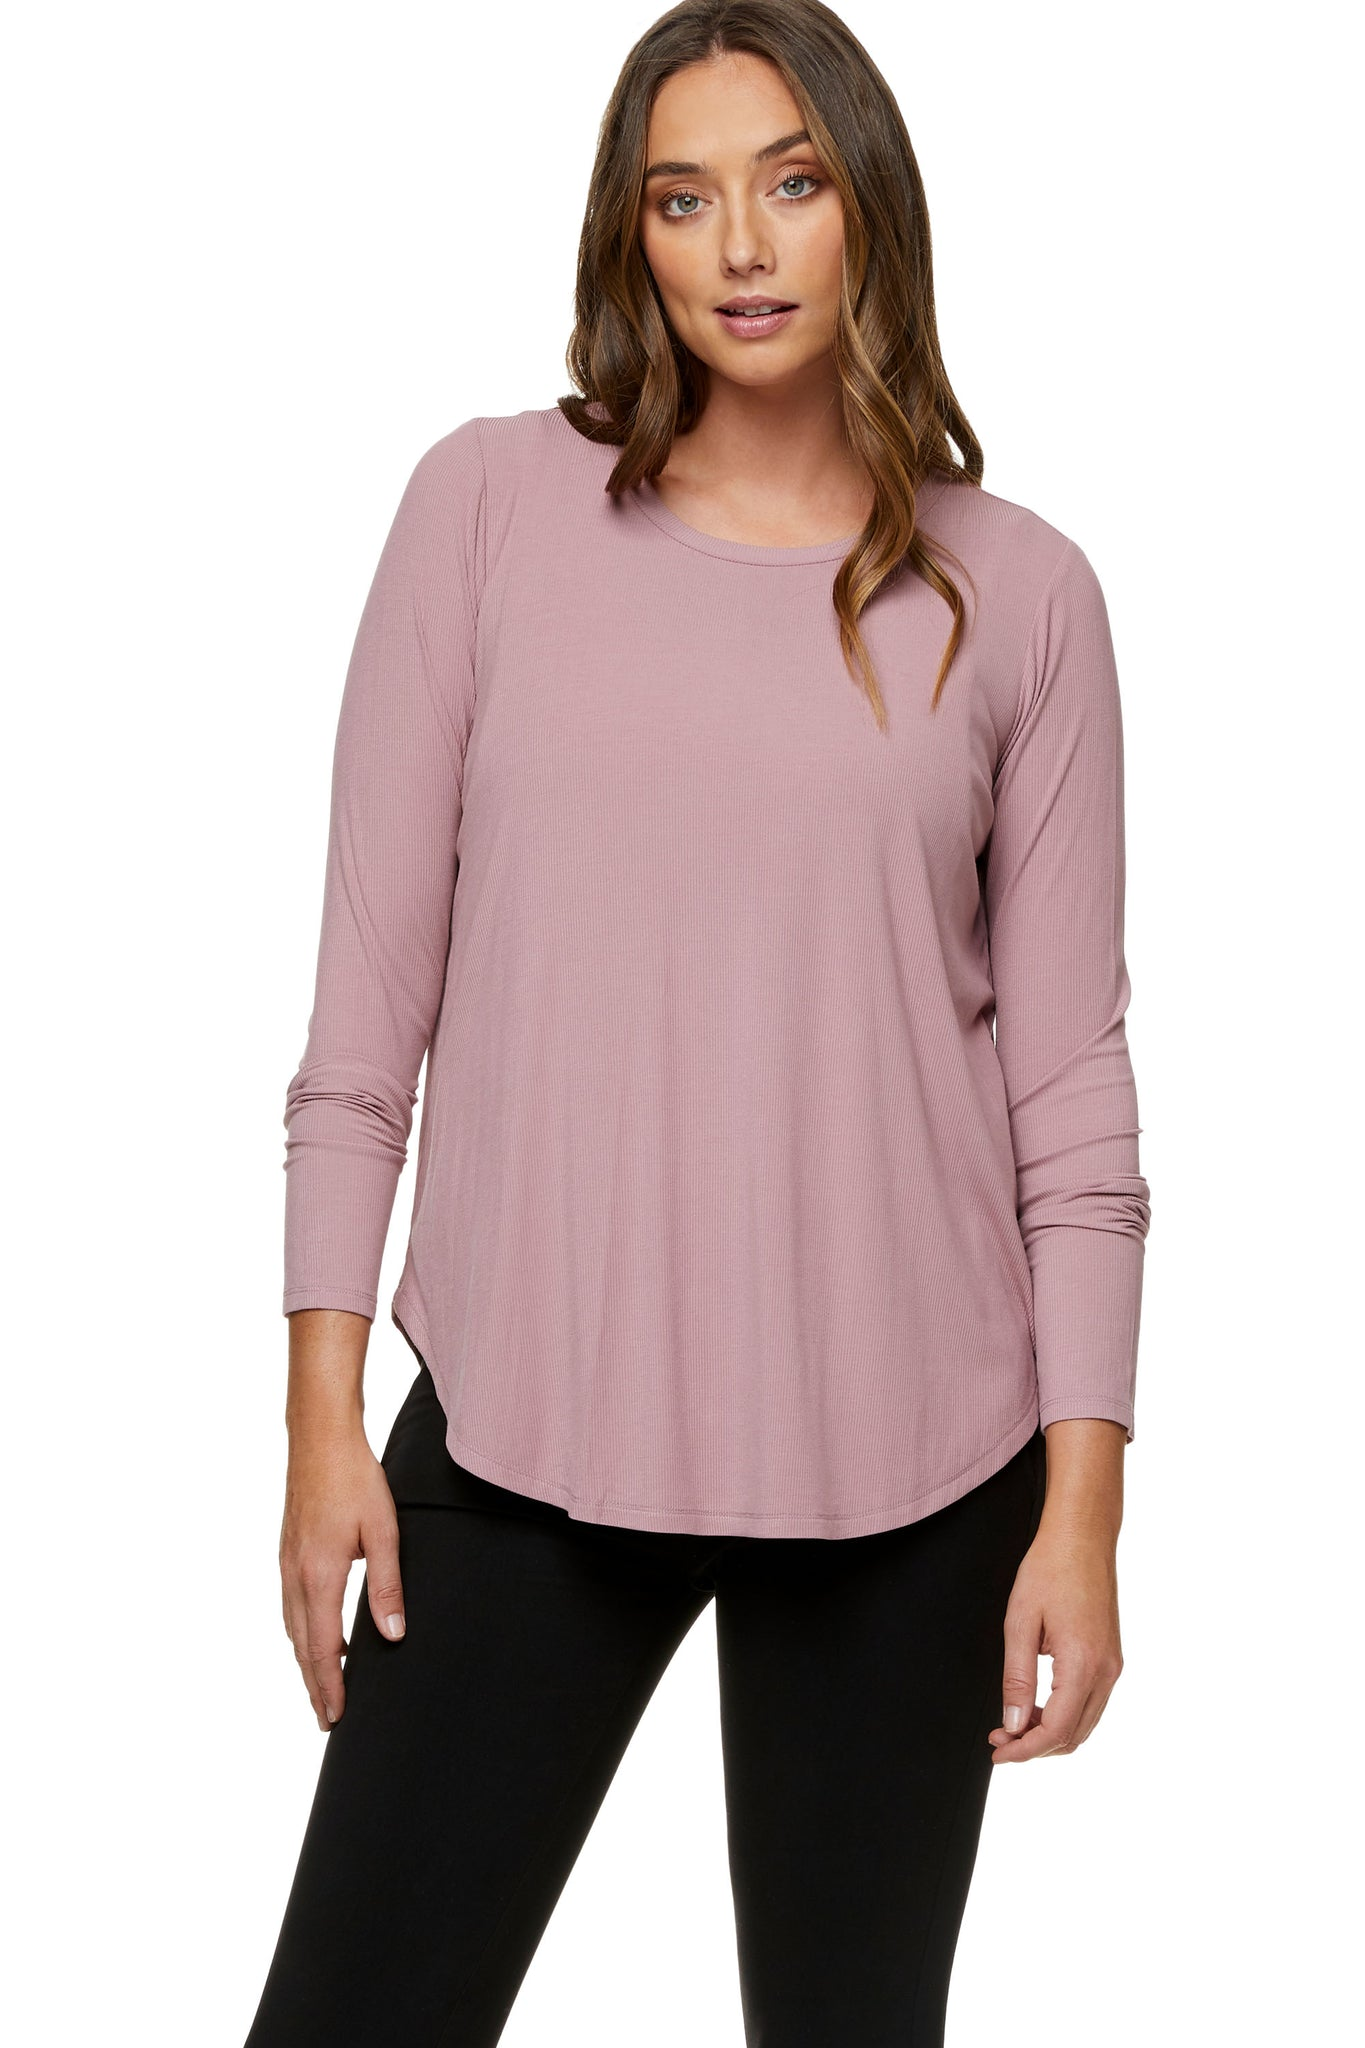 Pink long sleeve nursing top 5